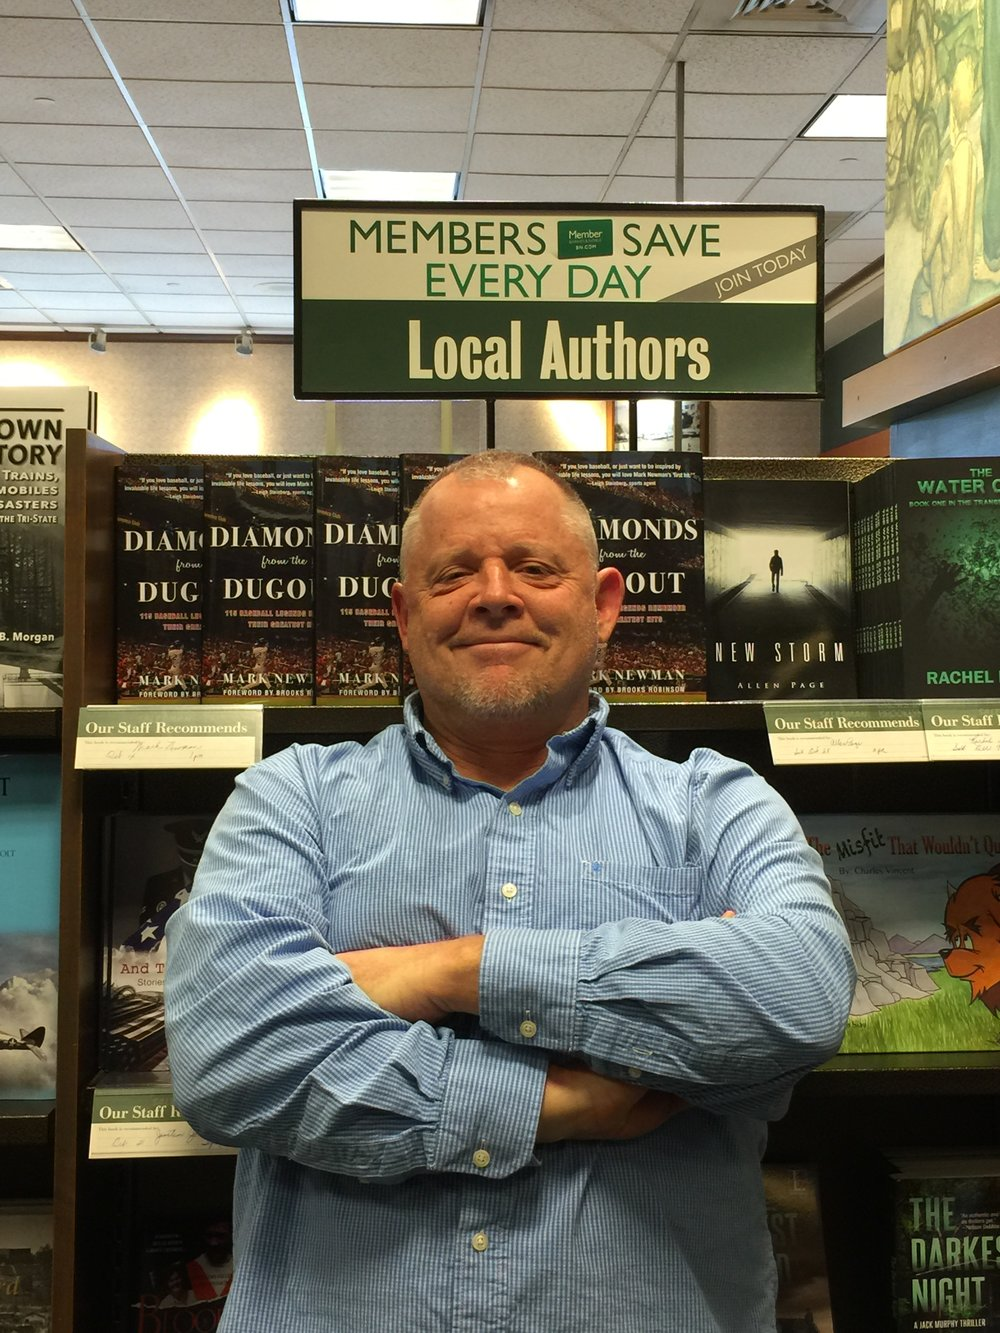 I'm a Local Author in Evansville, Indiana.